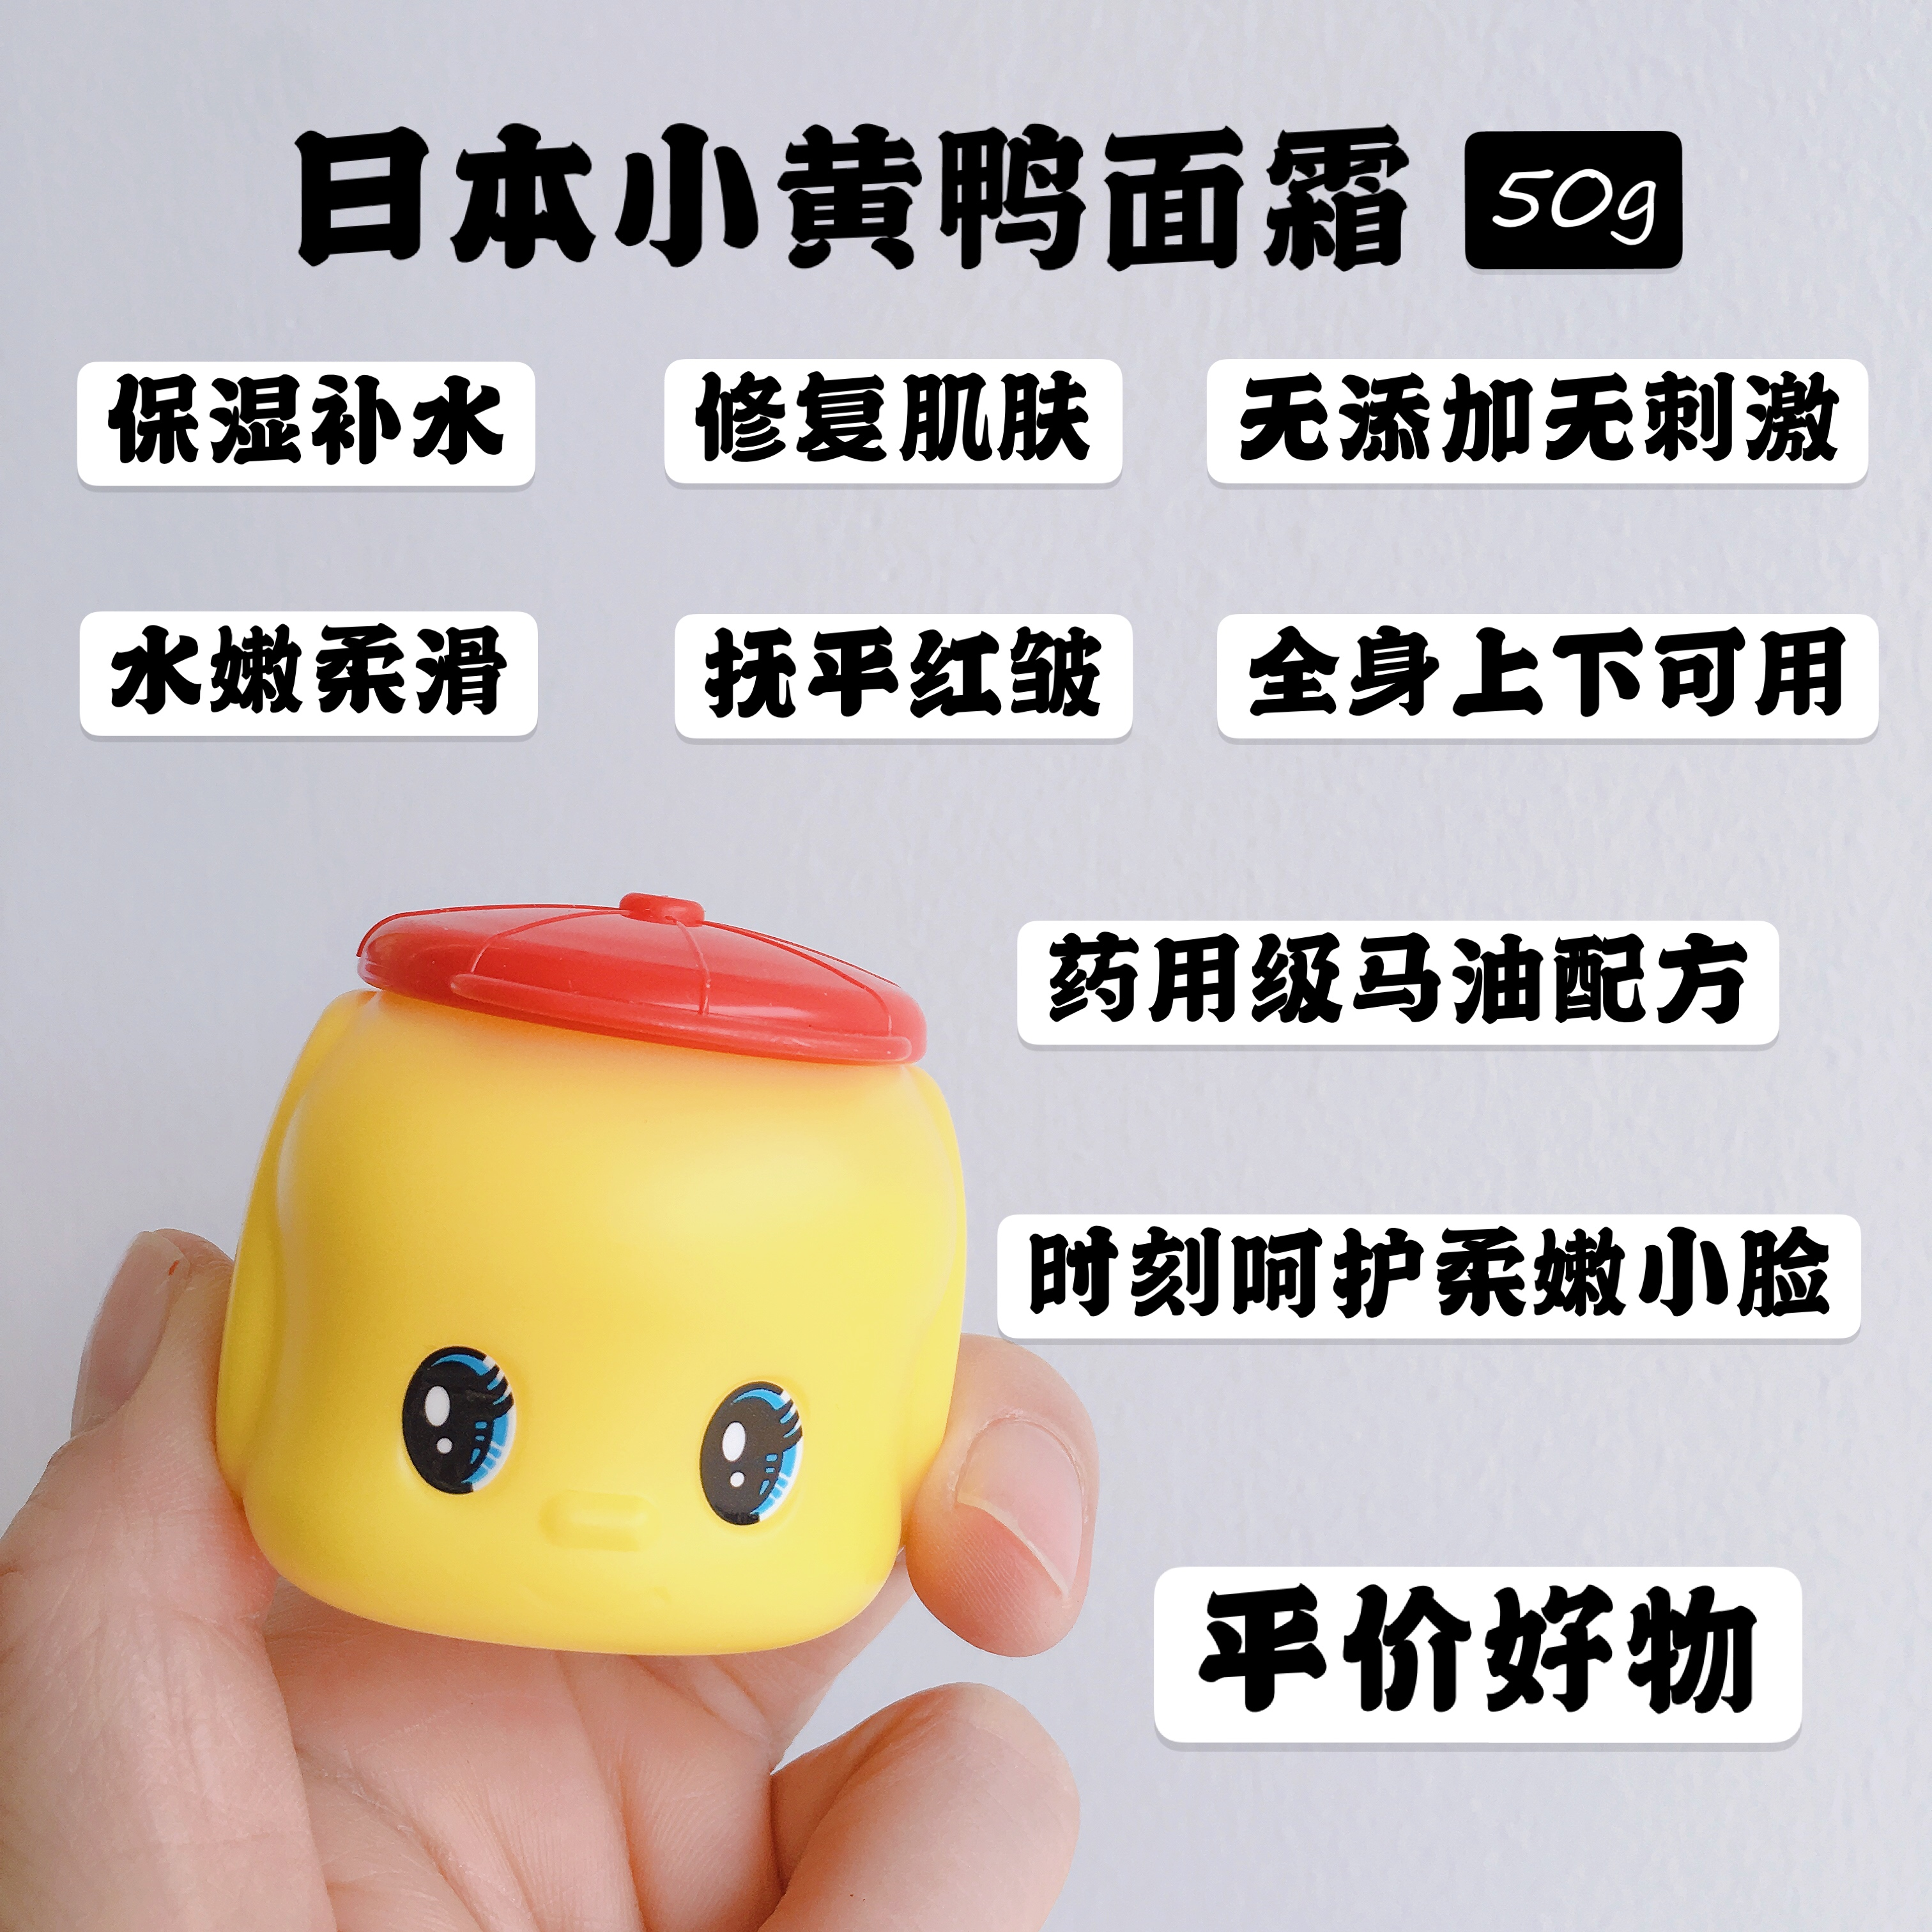 FUEKI blessing but small yellow duck, infant horse oil cream to replenishment, to blush and moisturize natural 50g native Japan.